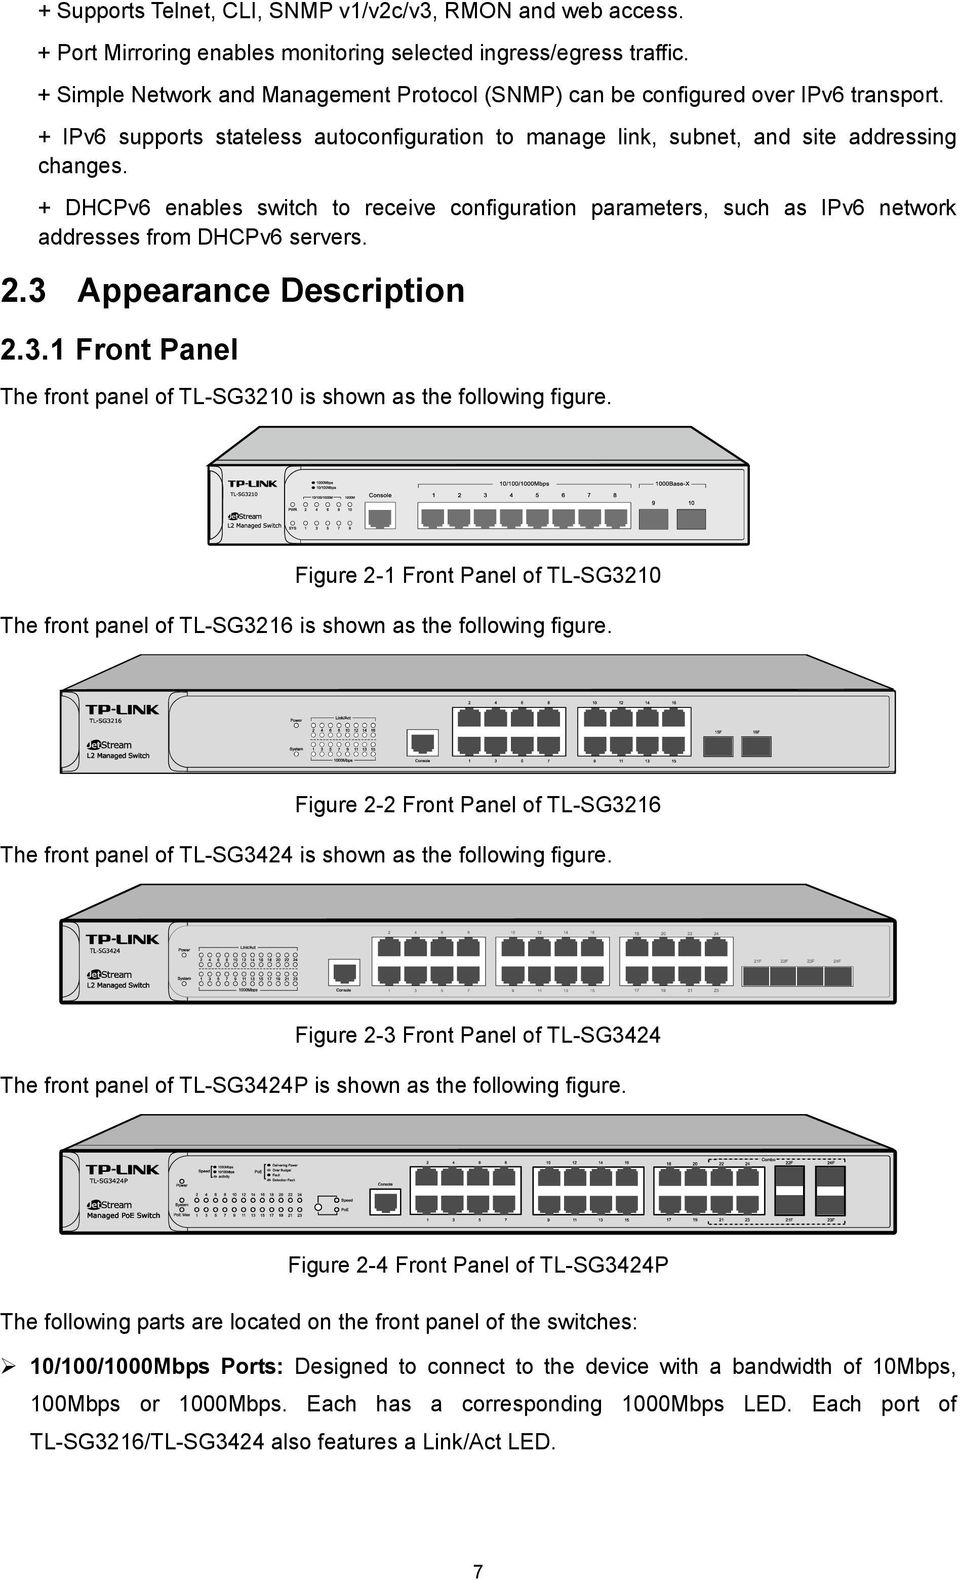 + DHCPv6 enables switch to receive configuration parameters, such as IPv6 network addresses from DHCPv6 servers. 2.3 Appearance Description 2.3.1 Front Panel The front panel of TL-SG3210 is shown as the following figure.